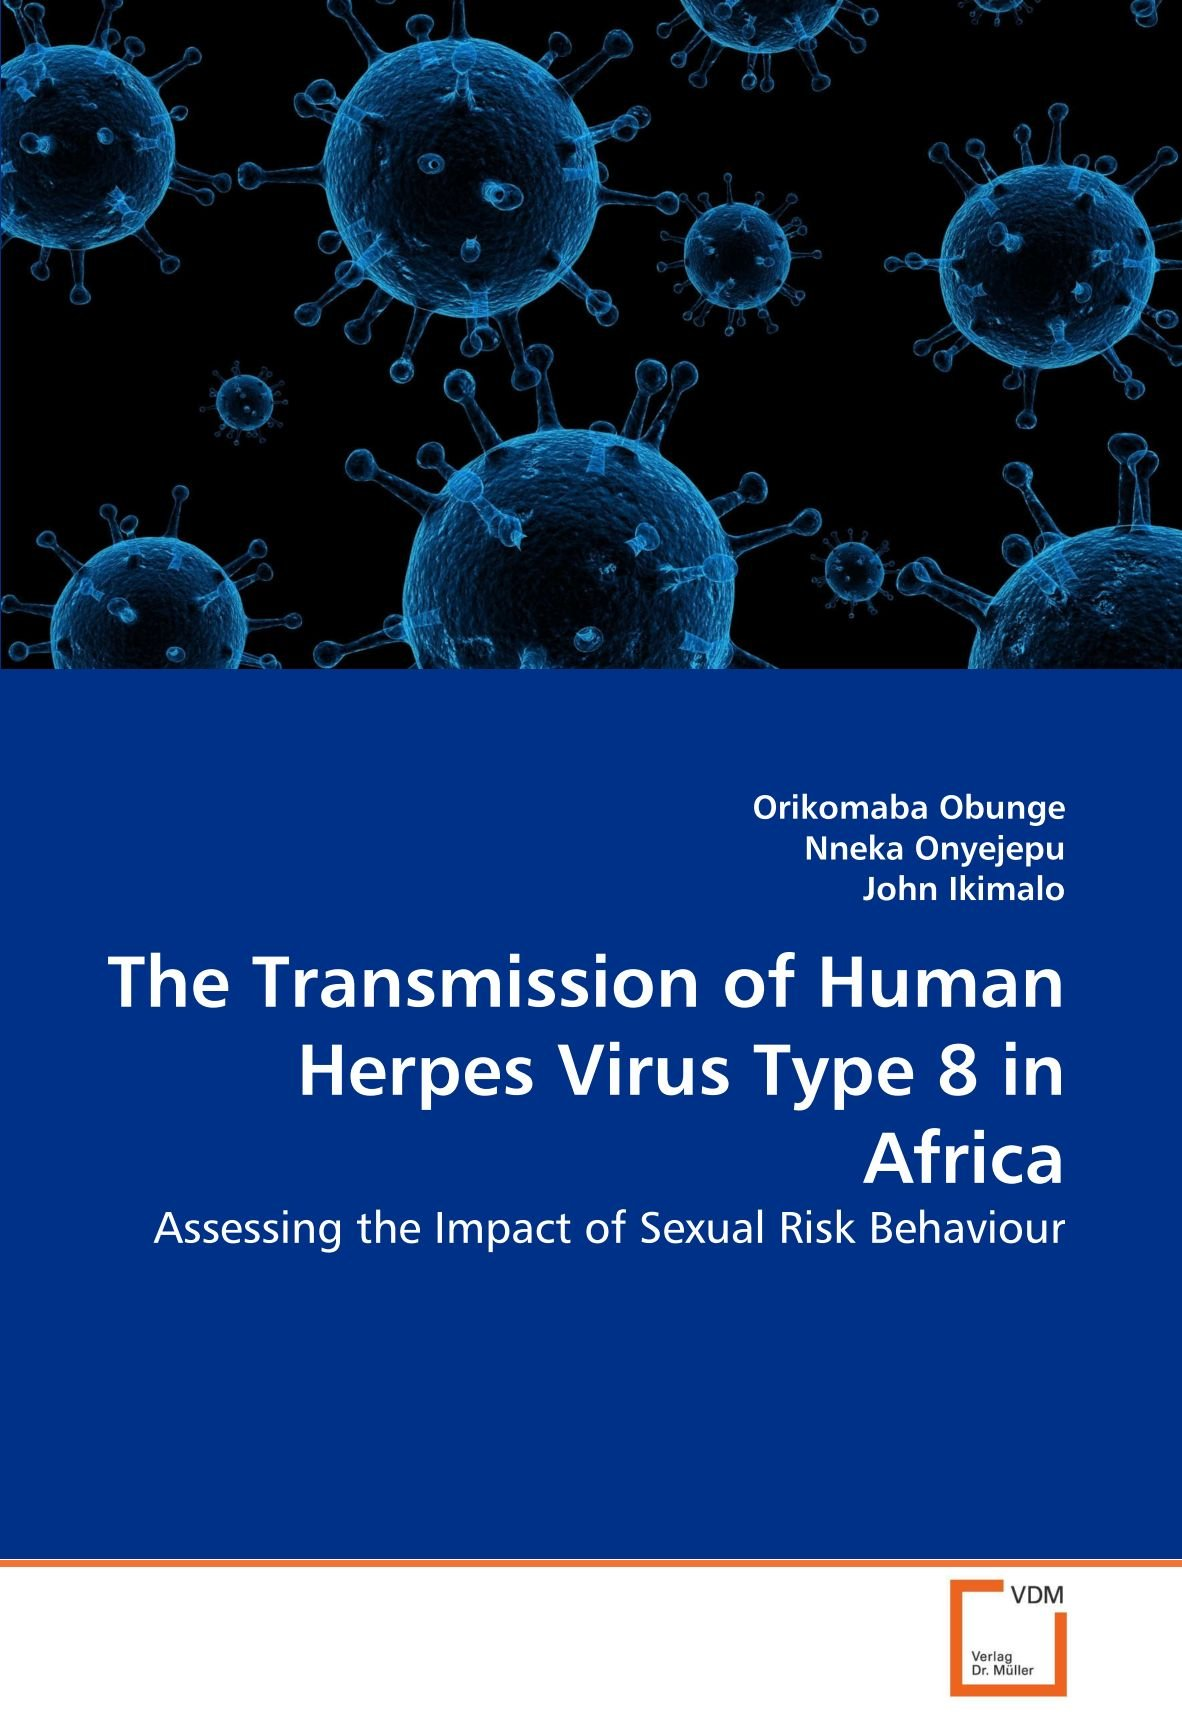 The Transmission of Human Herpes Virus Type 8 in Africa: Assessing the Impact of Sexual Risk Behaviour ebook